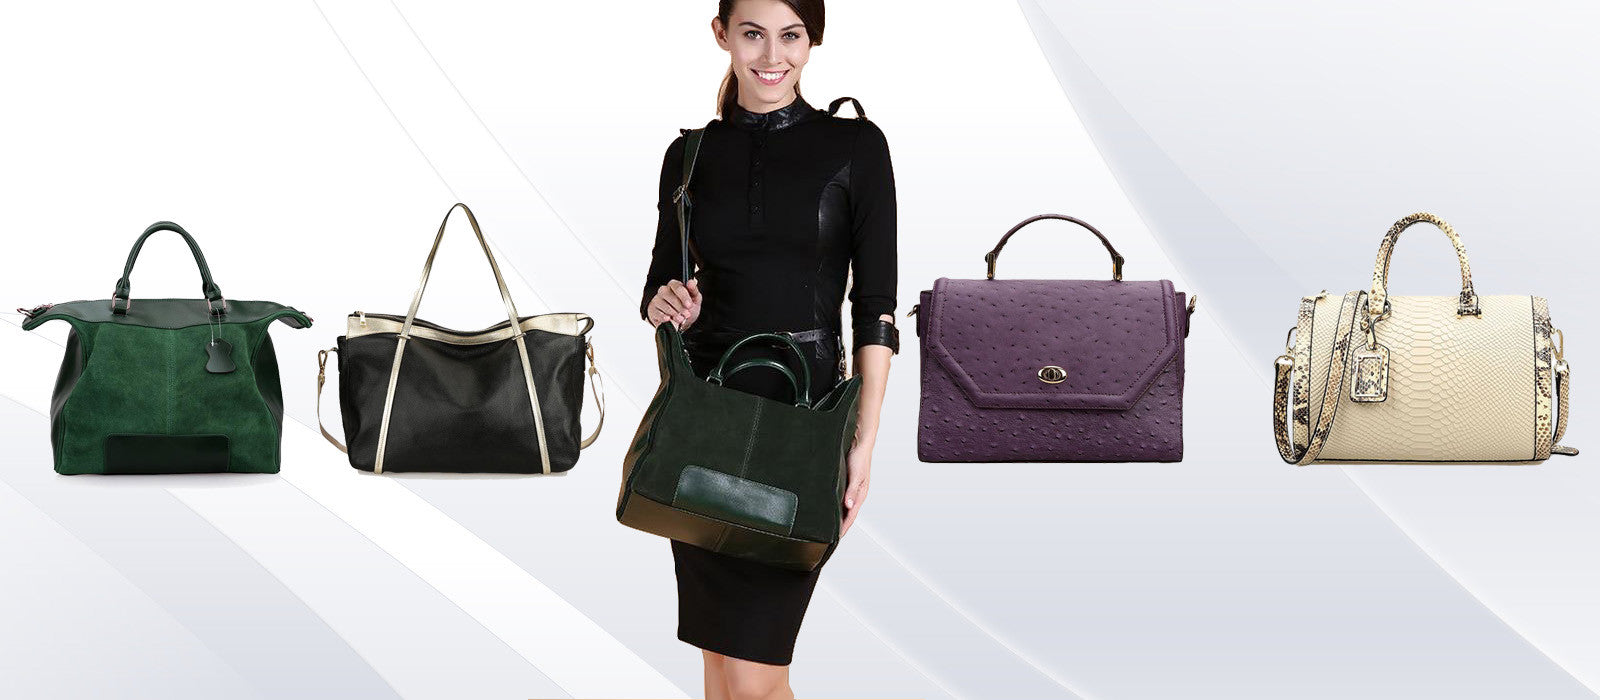 Lixmee women bag collection